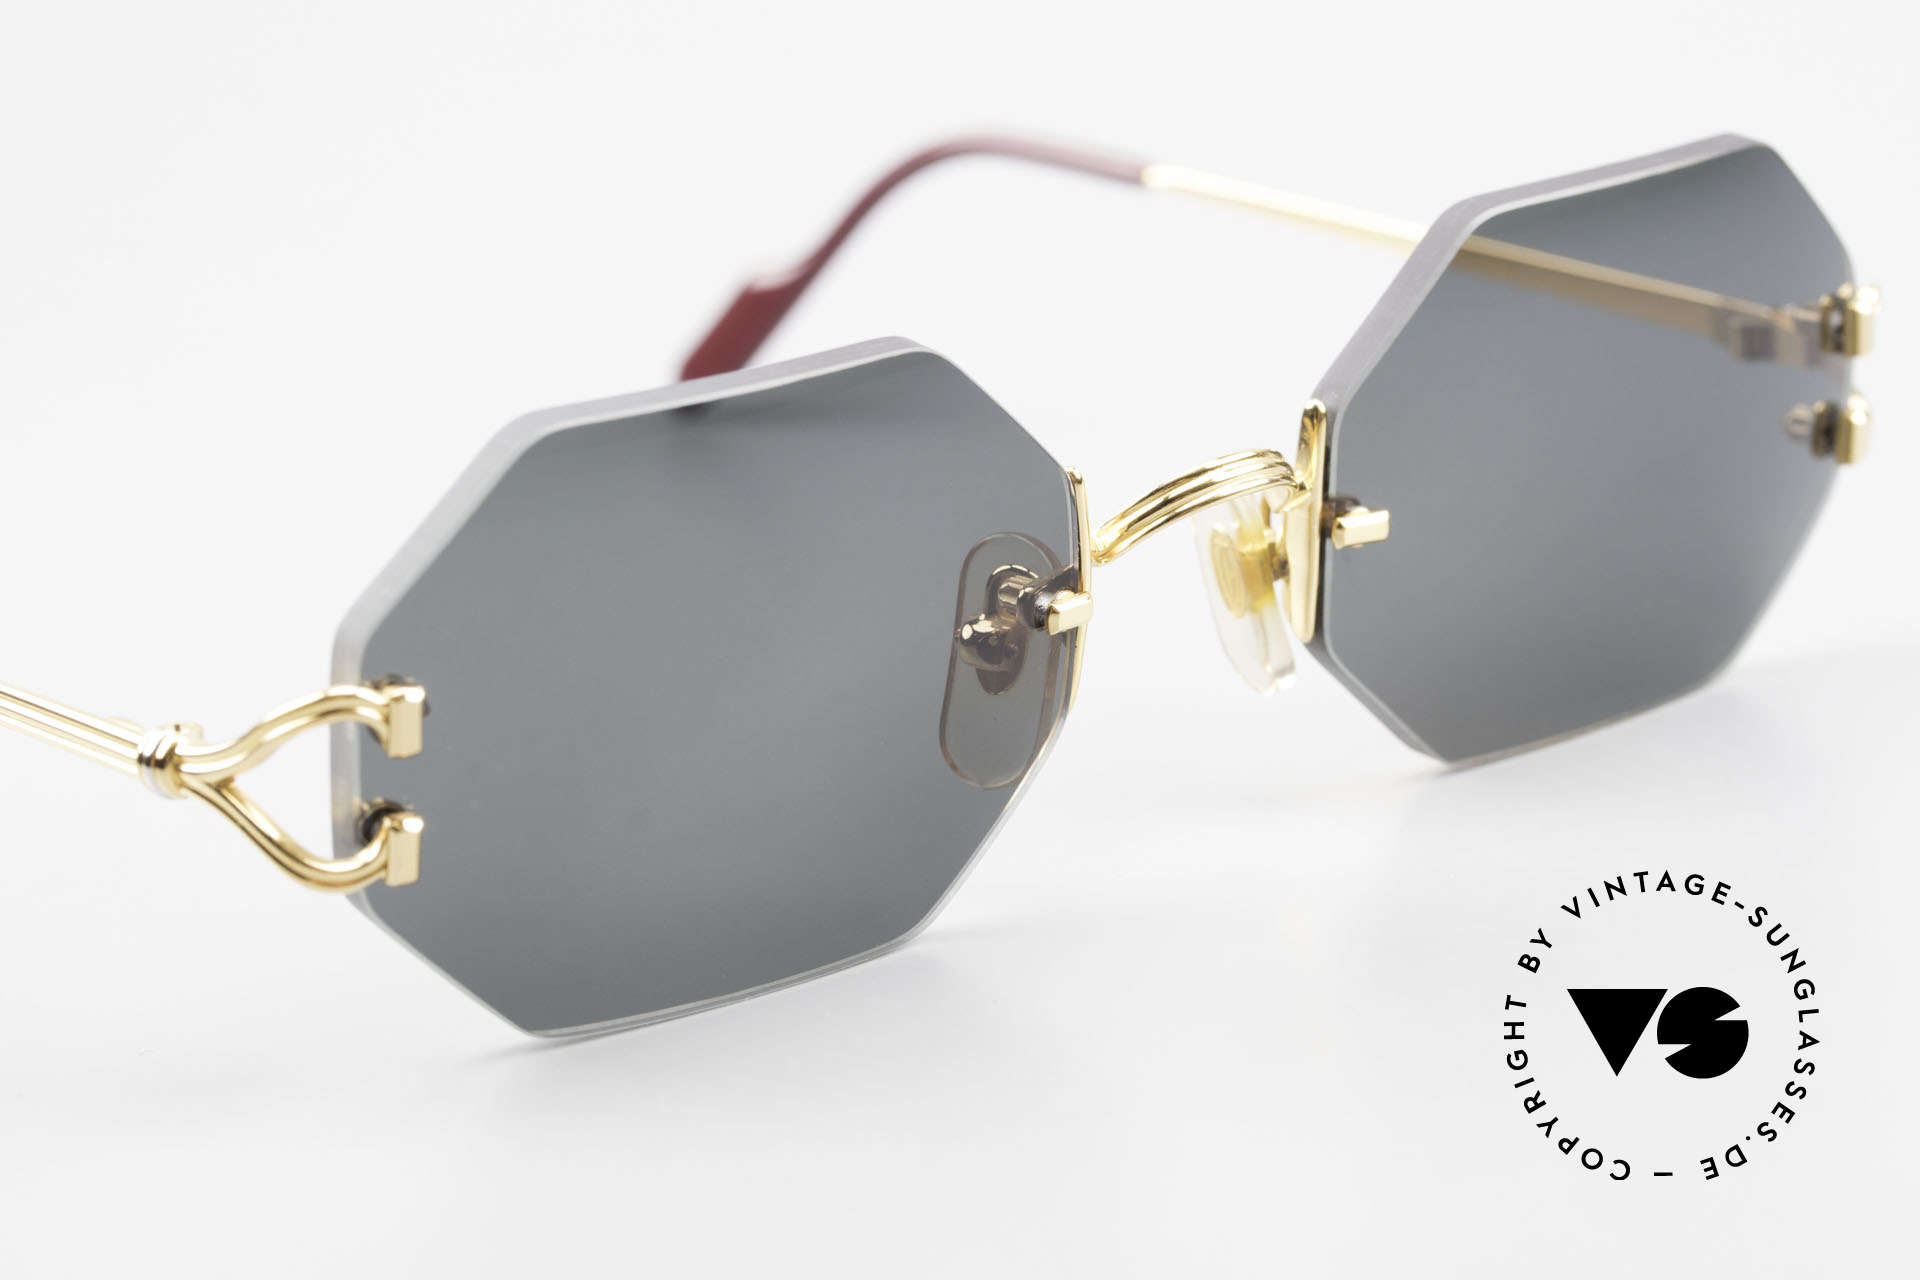 Cartier Rimless Octag Rimless Octagonal Shades - L, unworn rarity comes with new orig. Cartier packing, Made for Men and Women